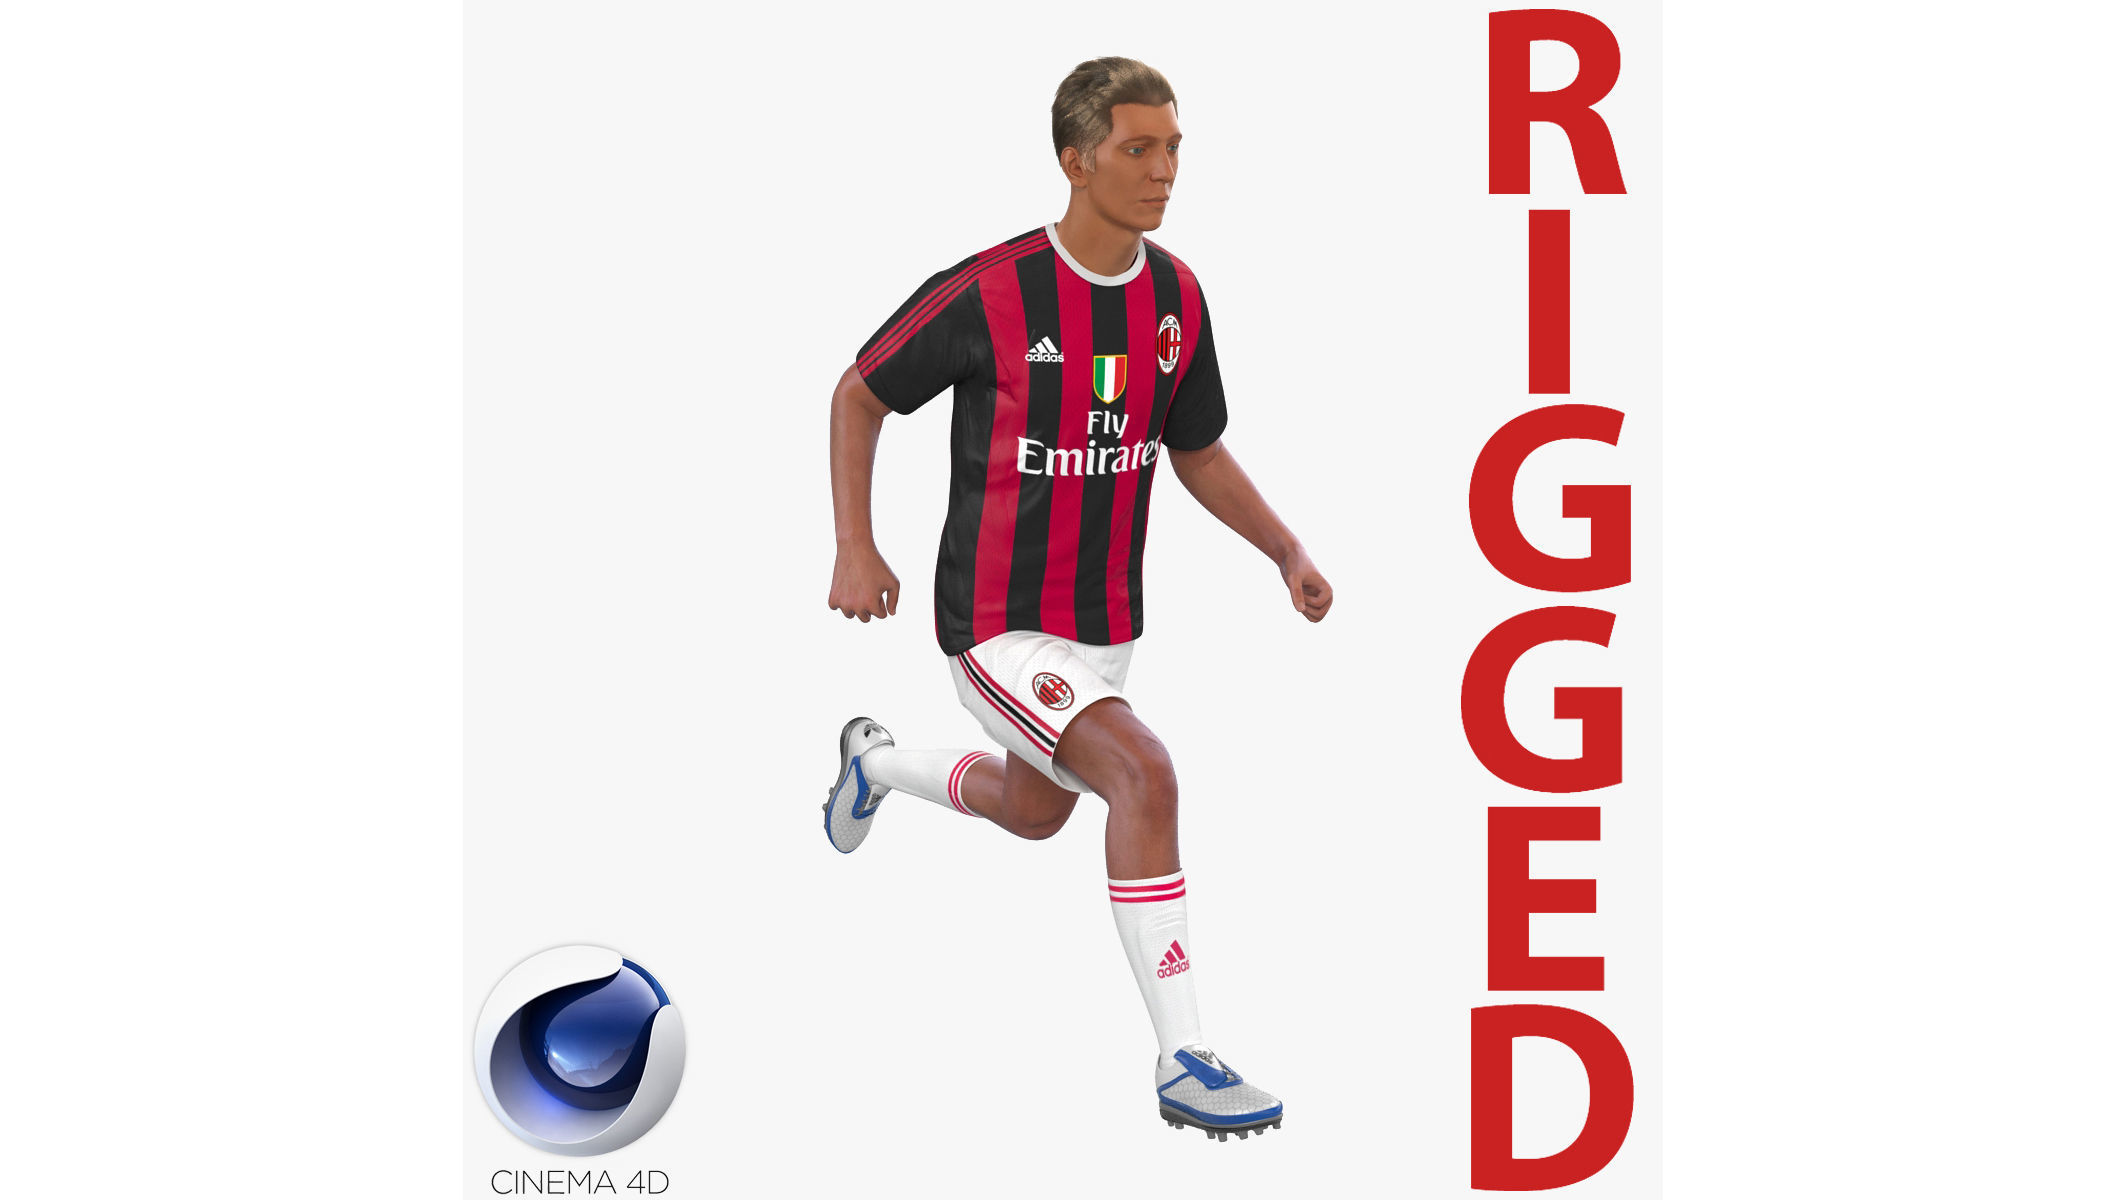 Soccer Player Milan Rigged 2 for Cinema 4D